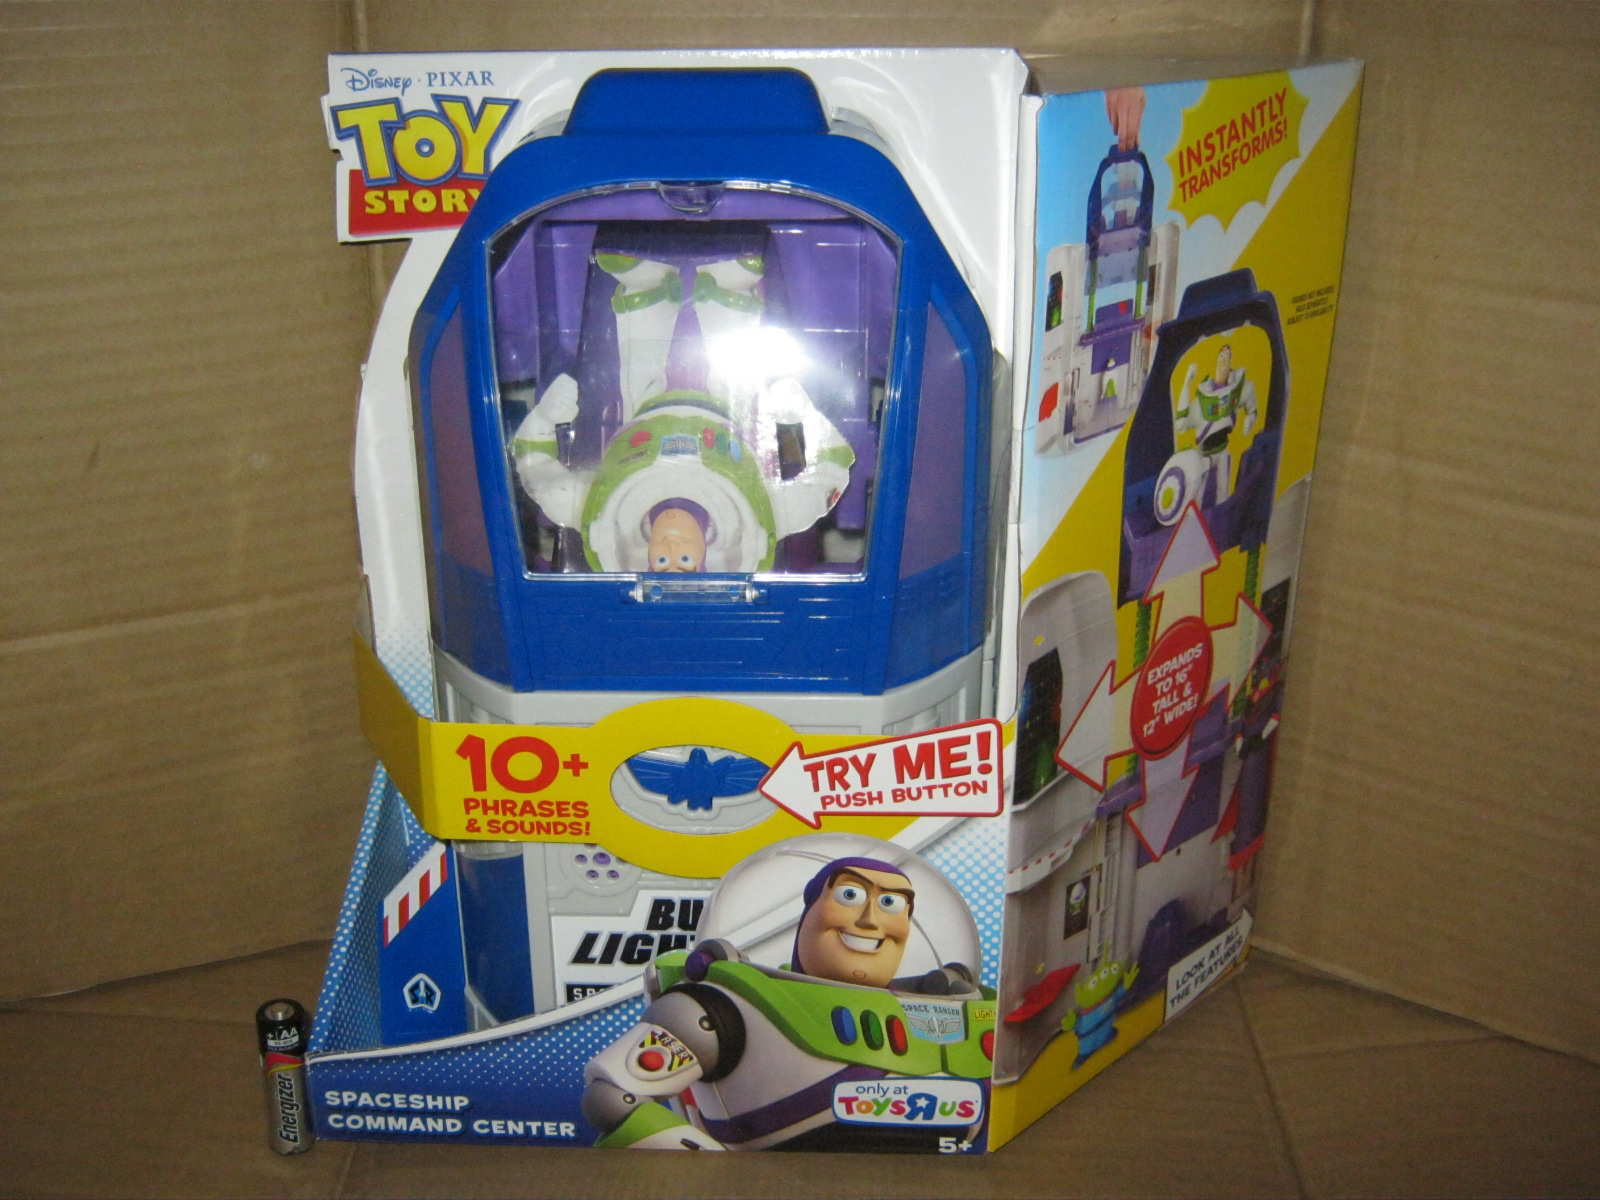 spaceship command center buzz lightyear toy story action figure